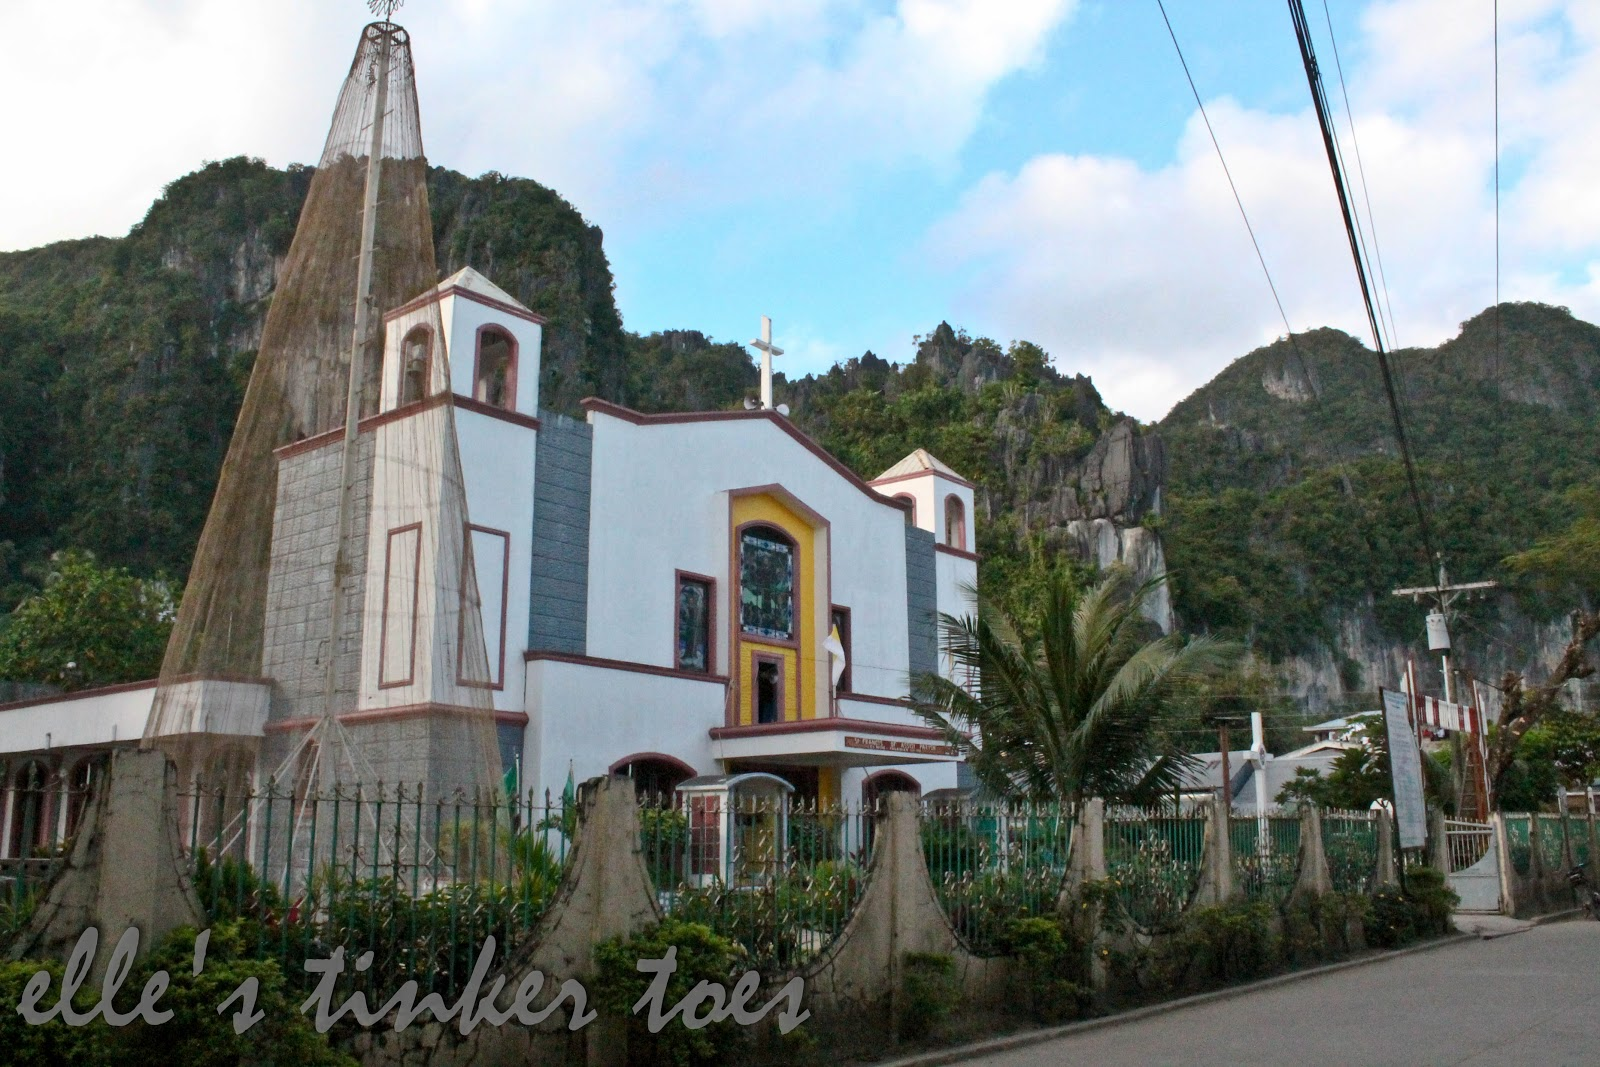 el nido catholic singles With over 7,500 idyllic islands making up the tropical archipelago of the philippines, you could island hop to a different island every day for 20 years so with limited time and an.